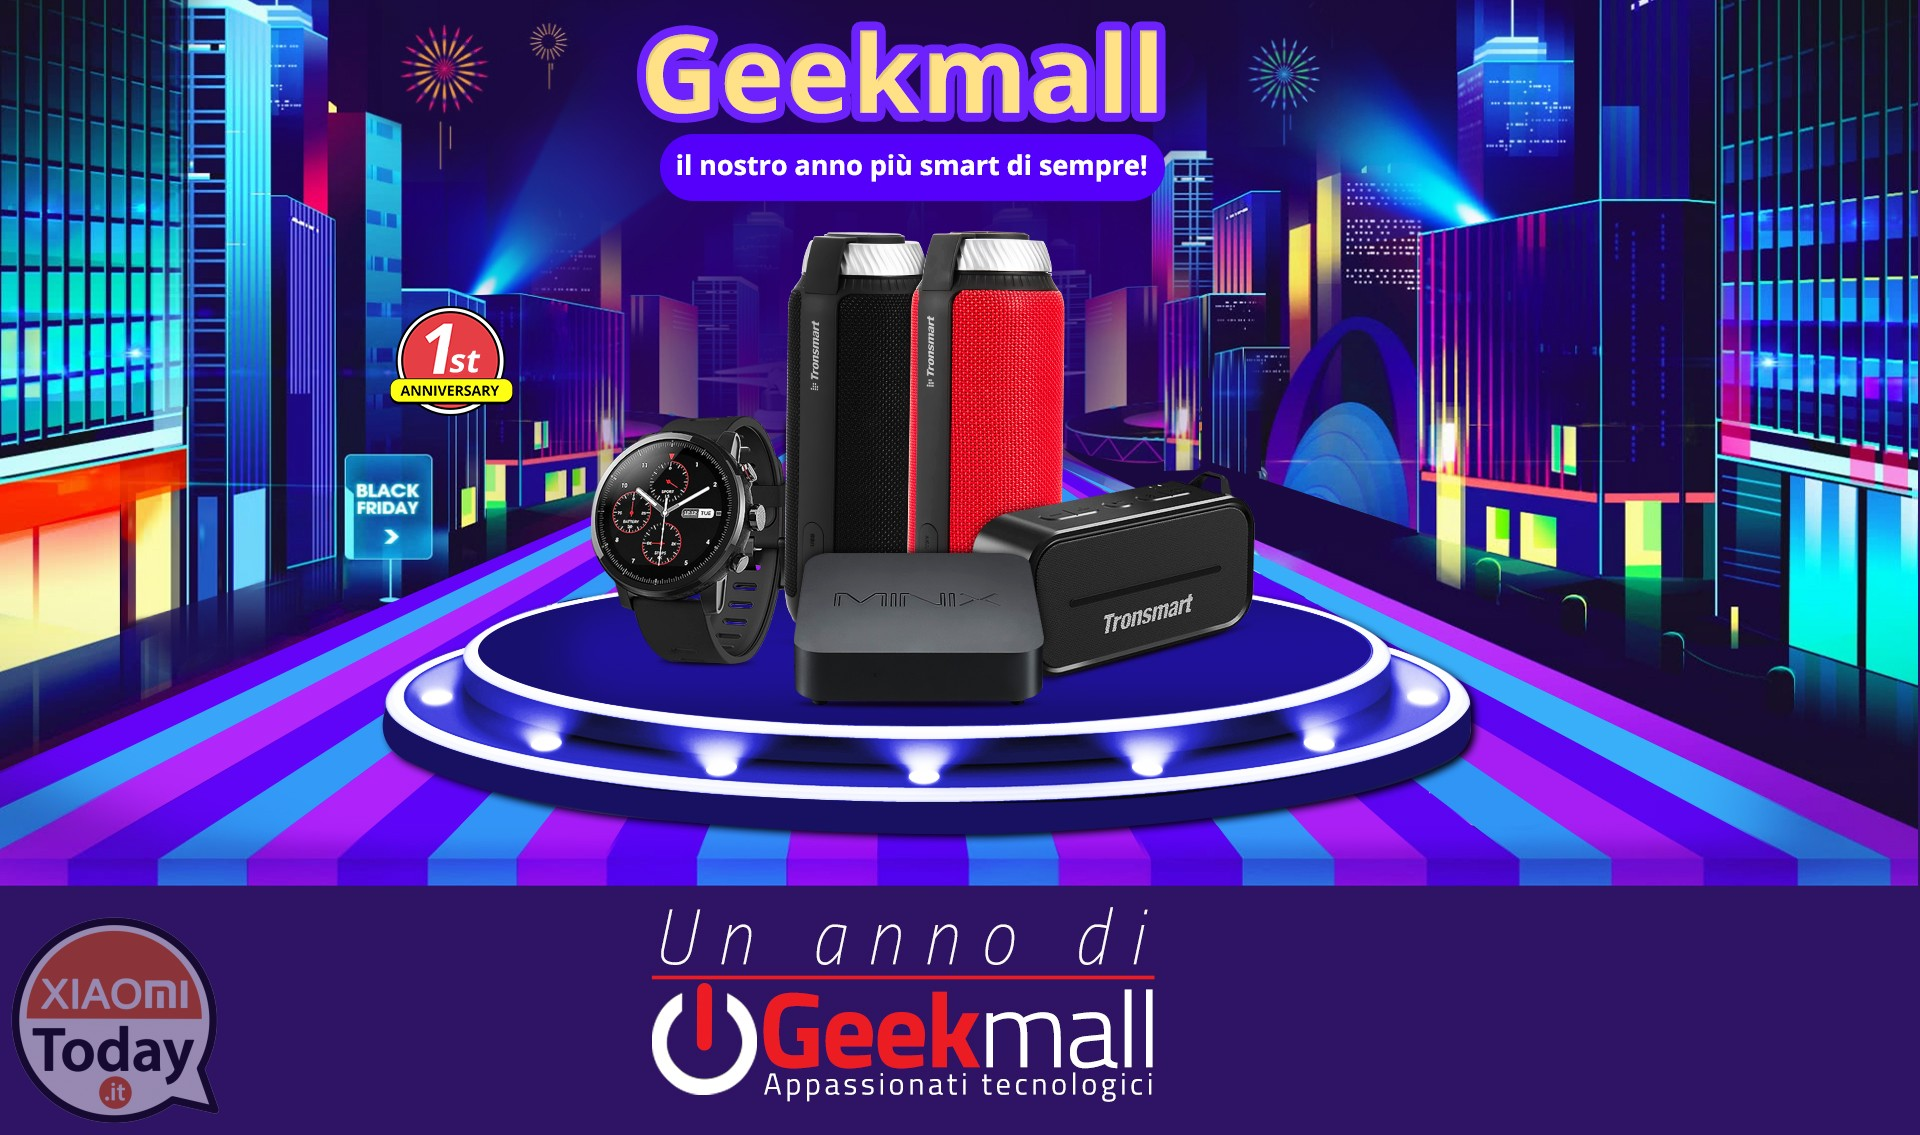 geekmall-compleanno